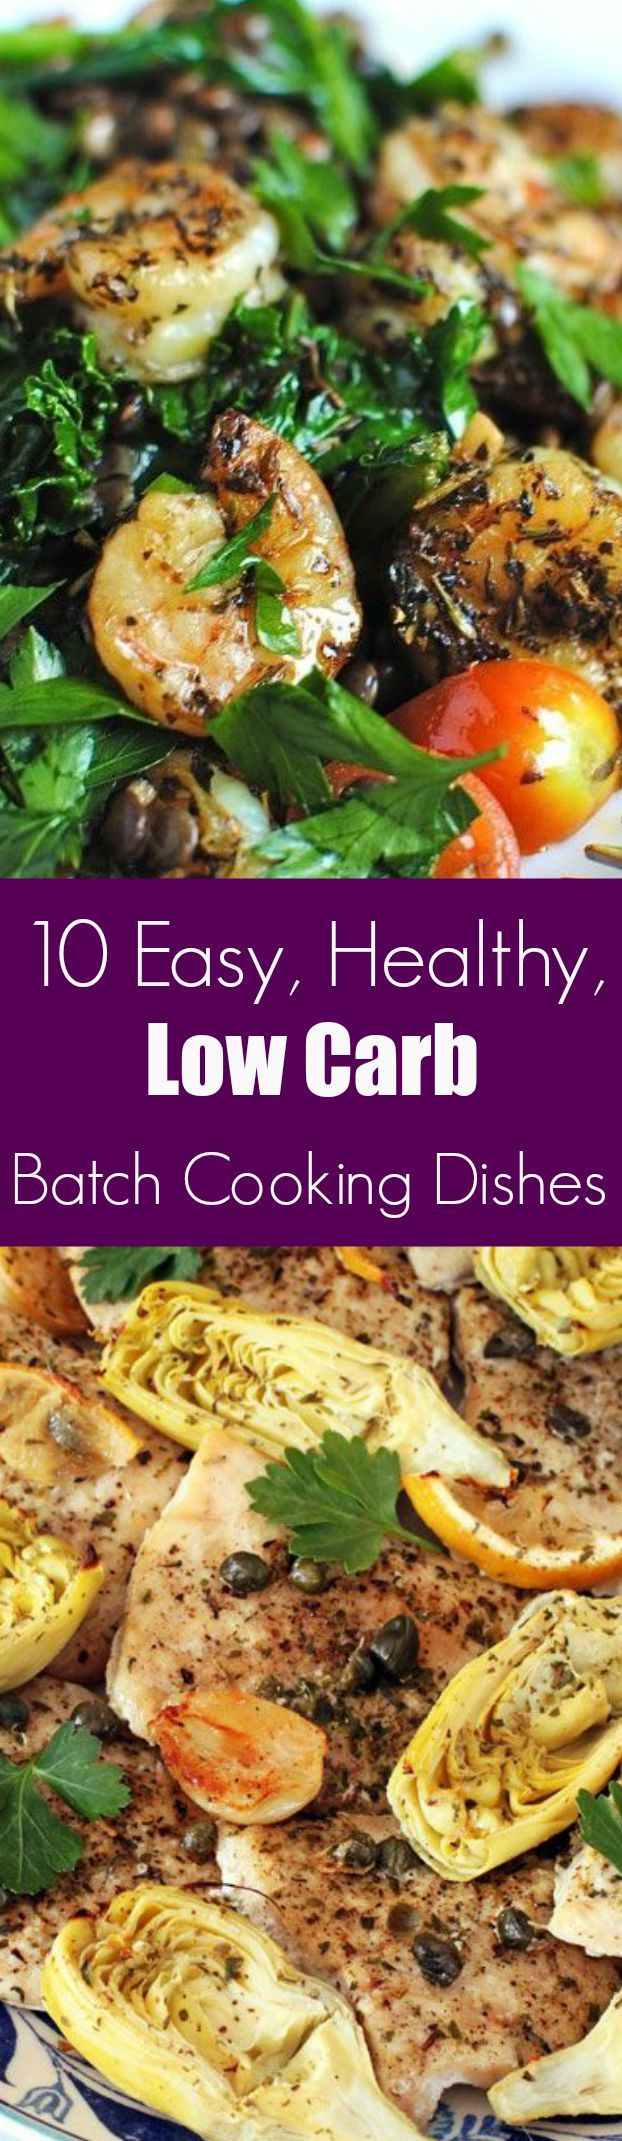 BATCH COOKING DISHES FOR YOUR LOW CARB DIET | www.4hourbodygirl.com | 4HourBodyGirl (On the blog ...